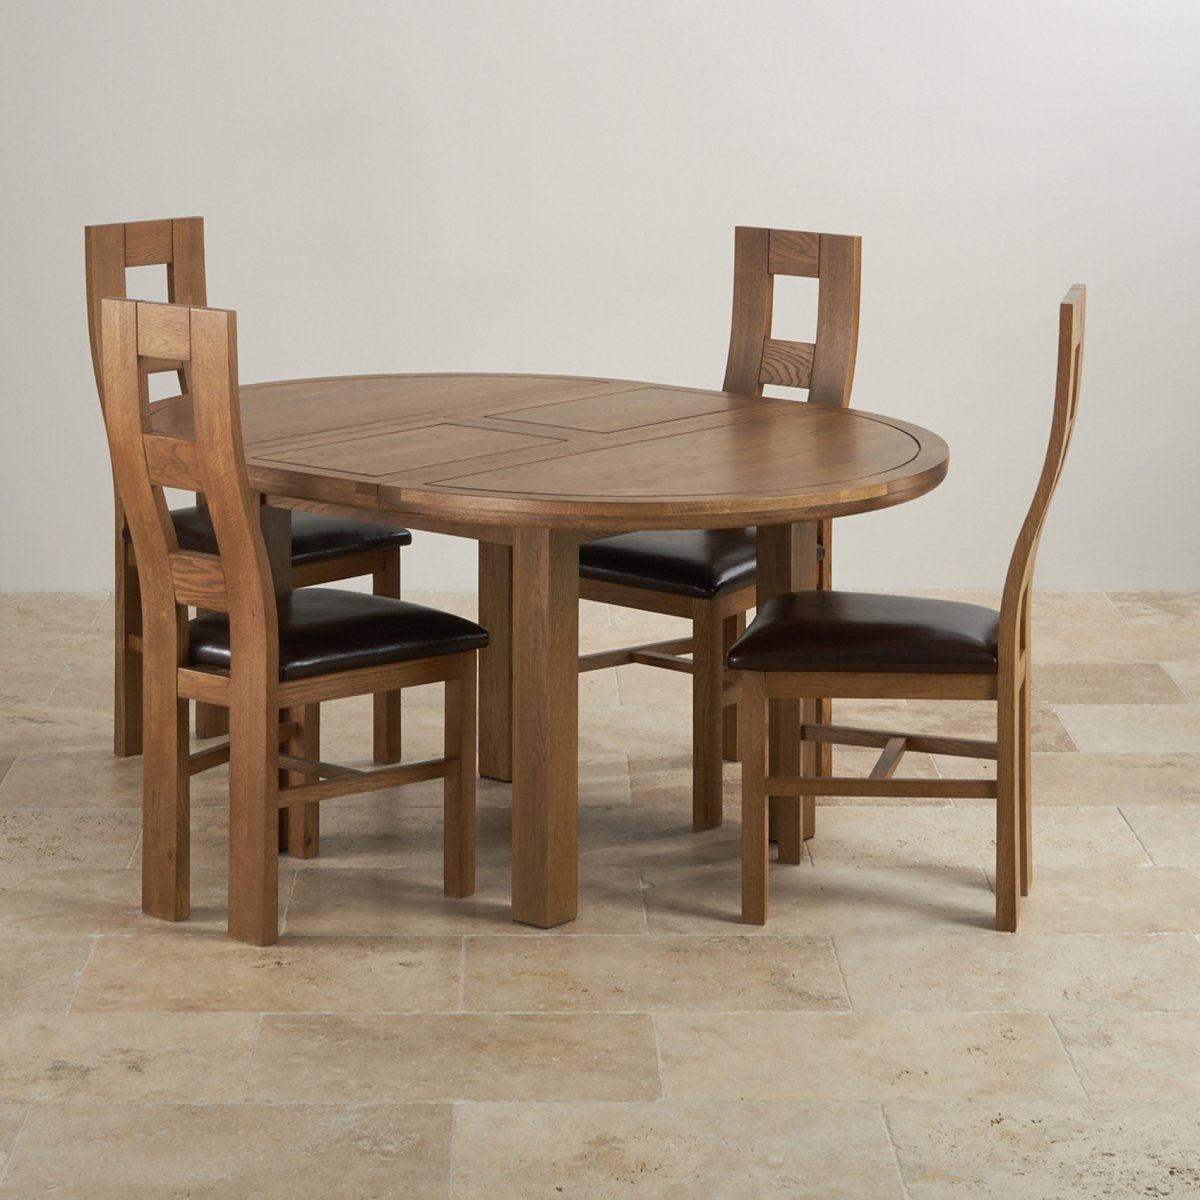 Knightsbridge round extending dining table 4 leather chairs for Round dining table for 4